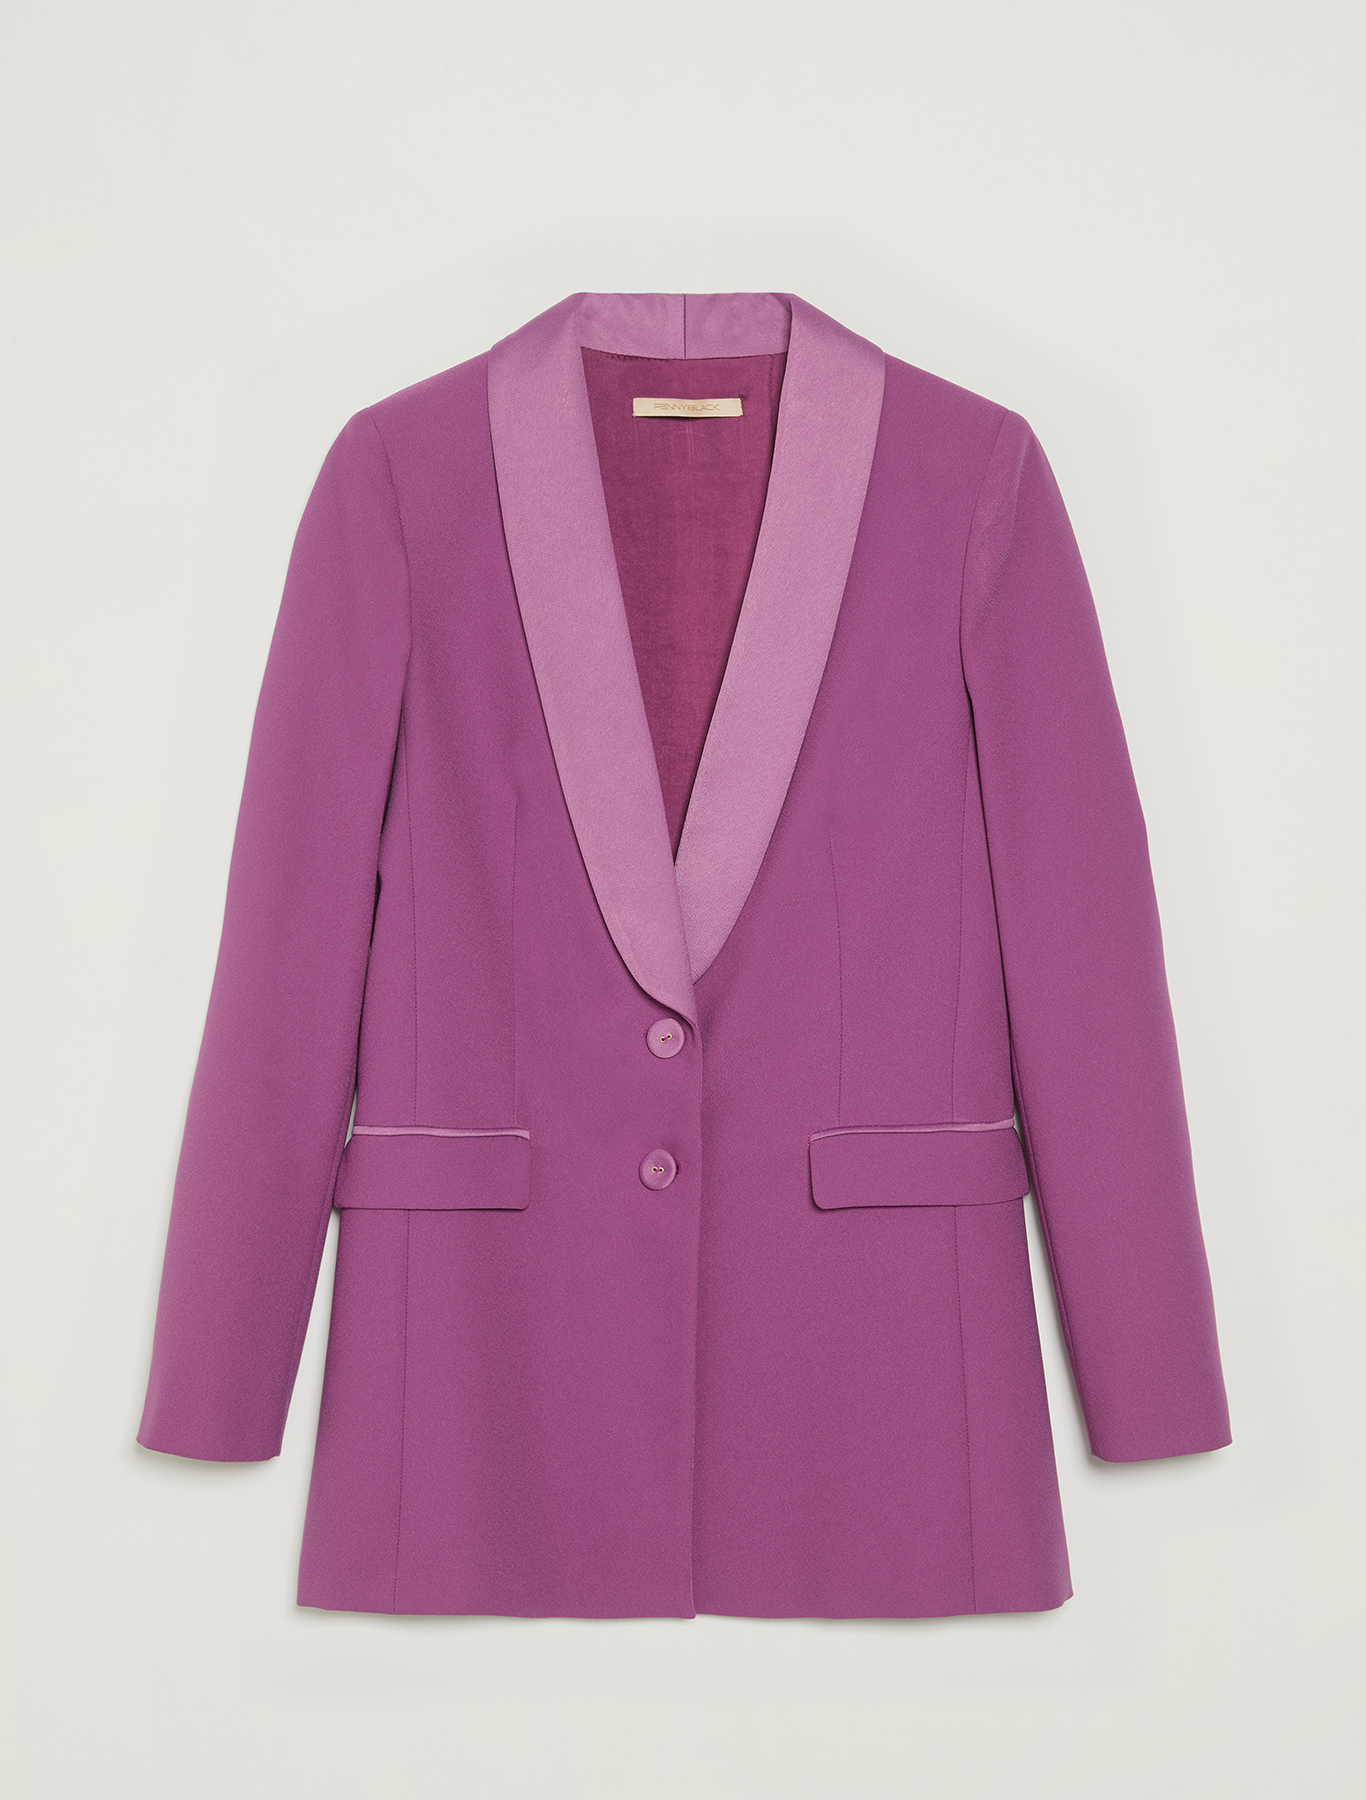 Smoking jacket with satin lapels - purple - pennyblack